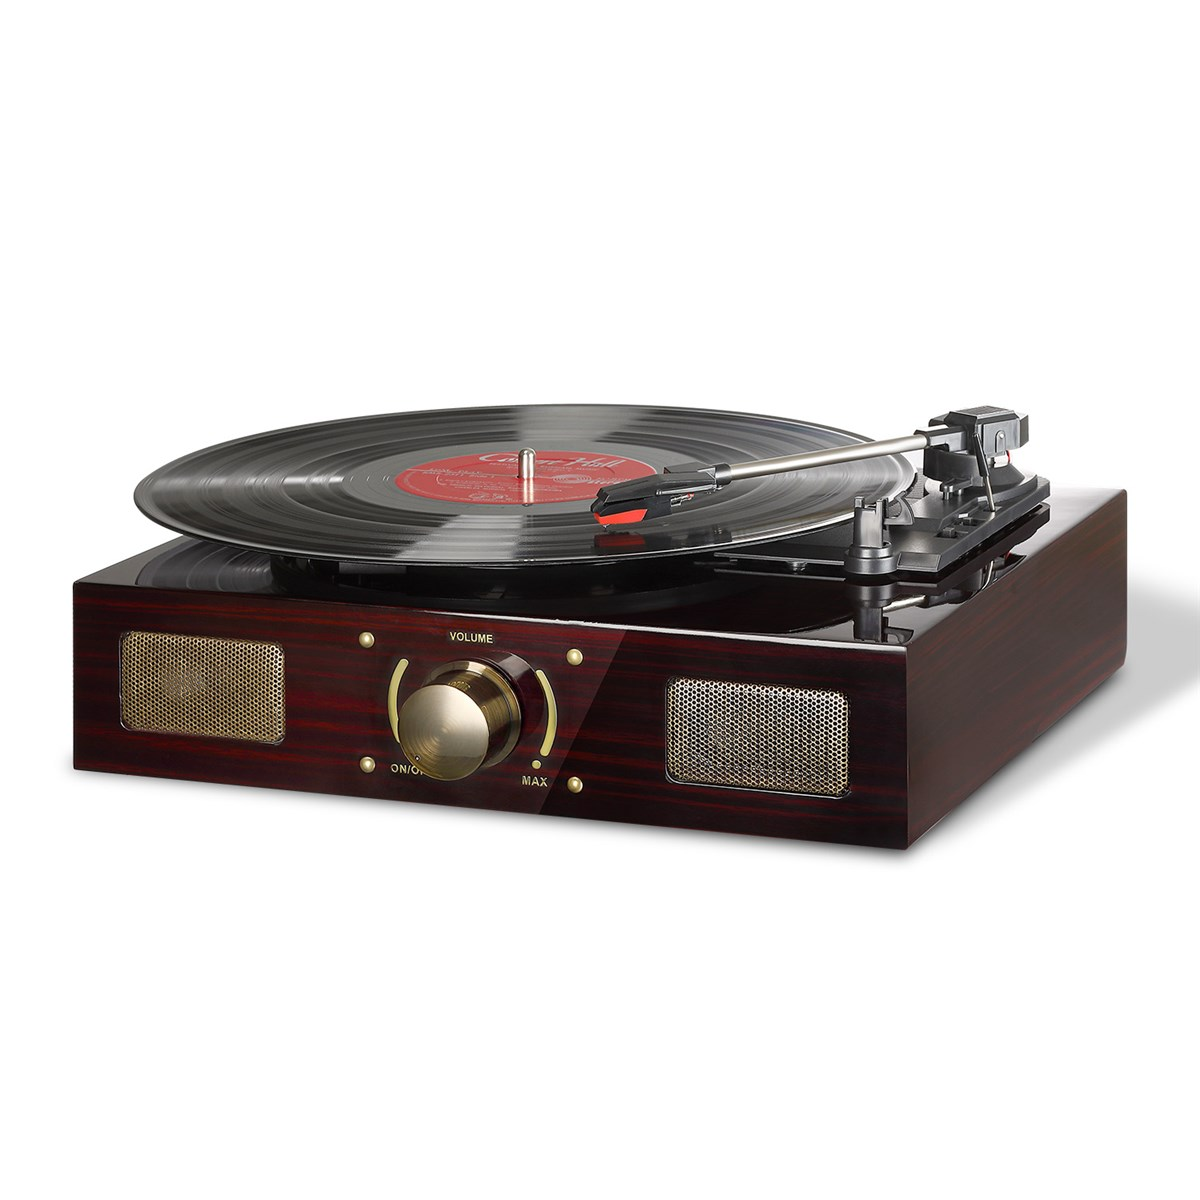 LuguLake Vinyl Record Player, Turntable with Stereo 3-Speed, RCA Output, Vintage Phonograph with High Gloss Surface